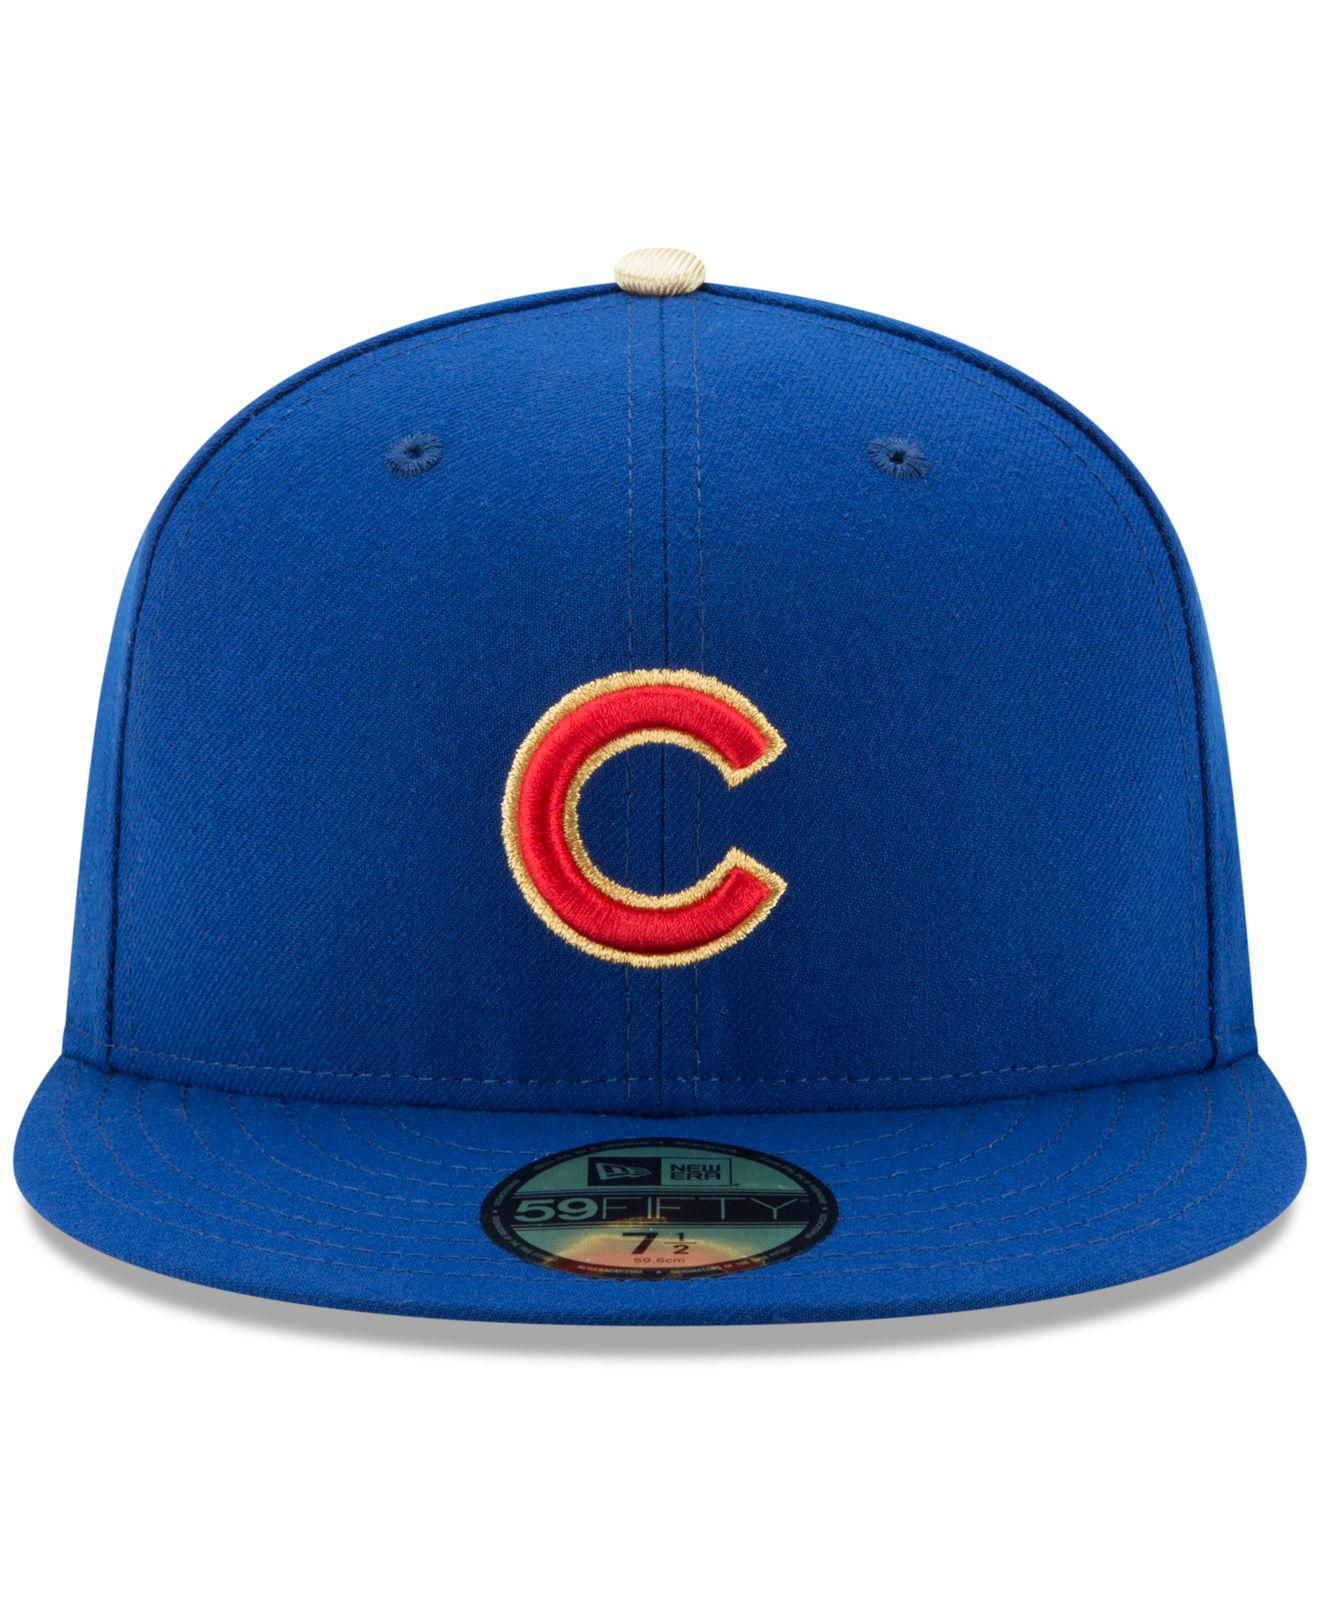 1f7d5501839 Lyst - Ktz Chicago Cubs Authentic Collection 2016 World Series  Commemorative Gold 59fifty Cap in Blue for Men